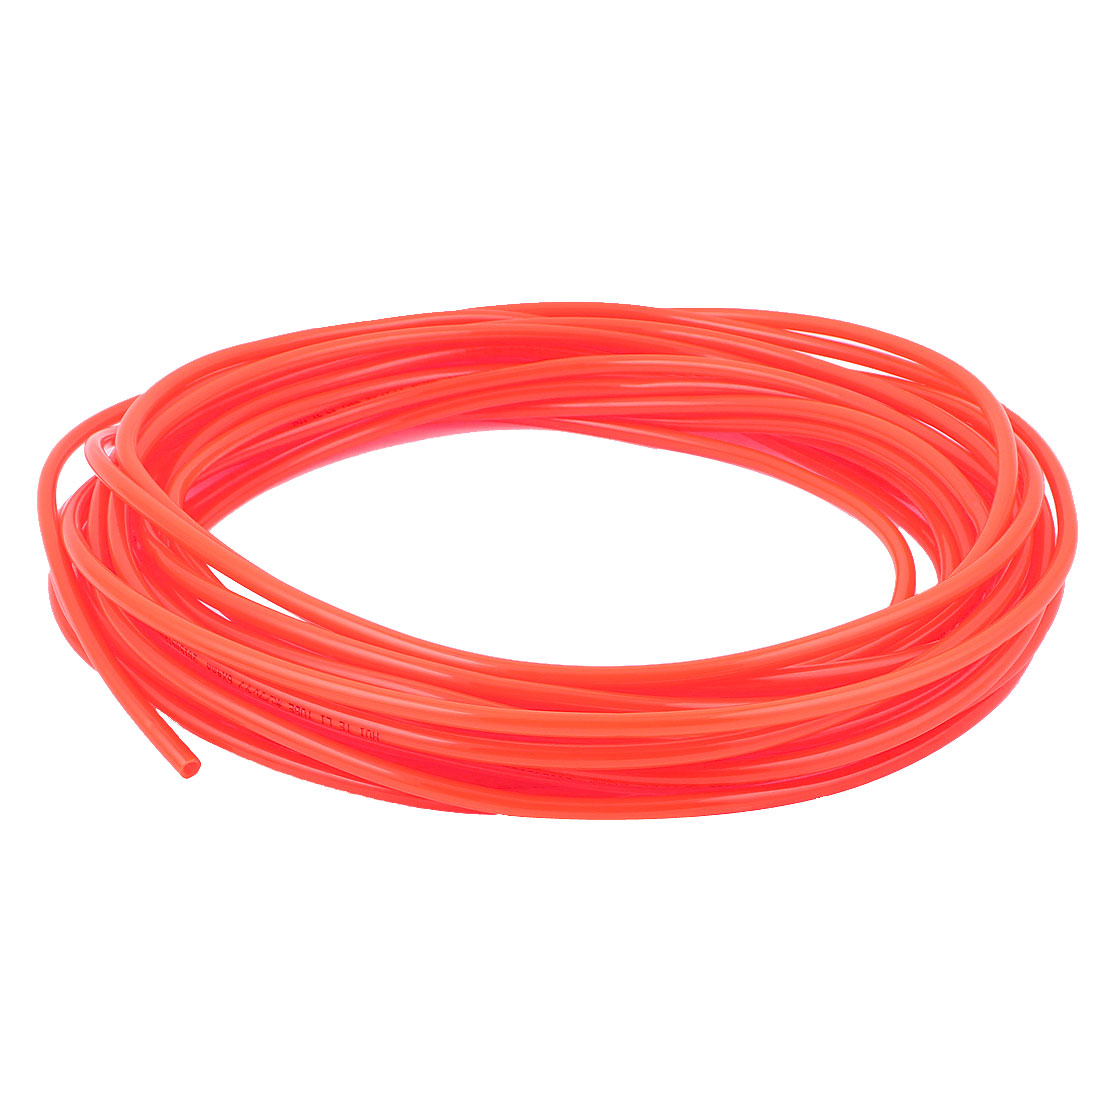 15M Long 6mmx4mm Dia Pneumatic Polyurethane PU Air Tube Tubing Pipe Hose Orange